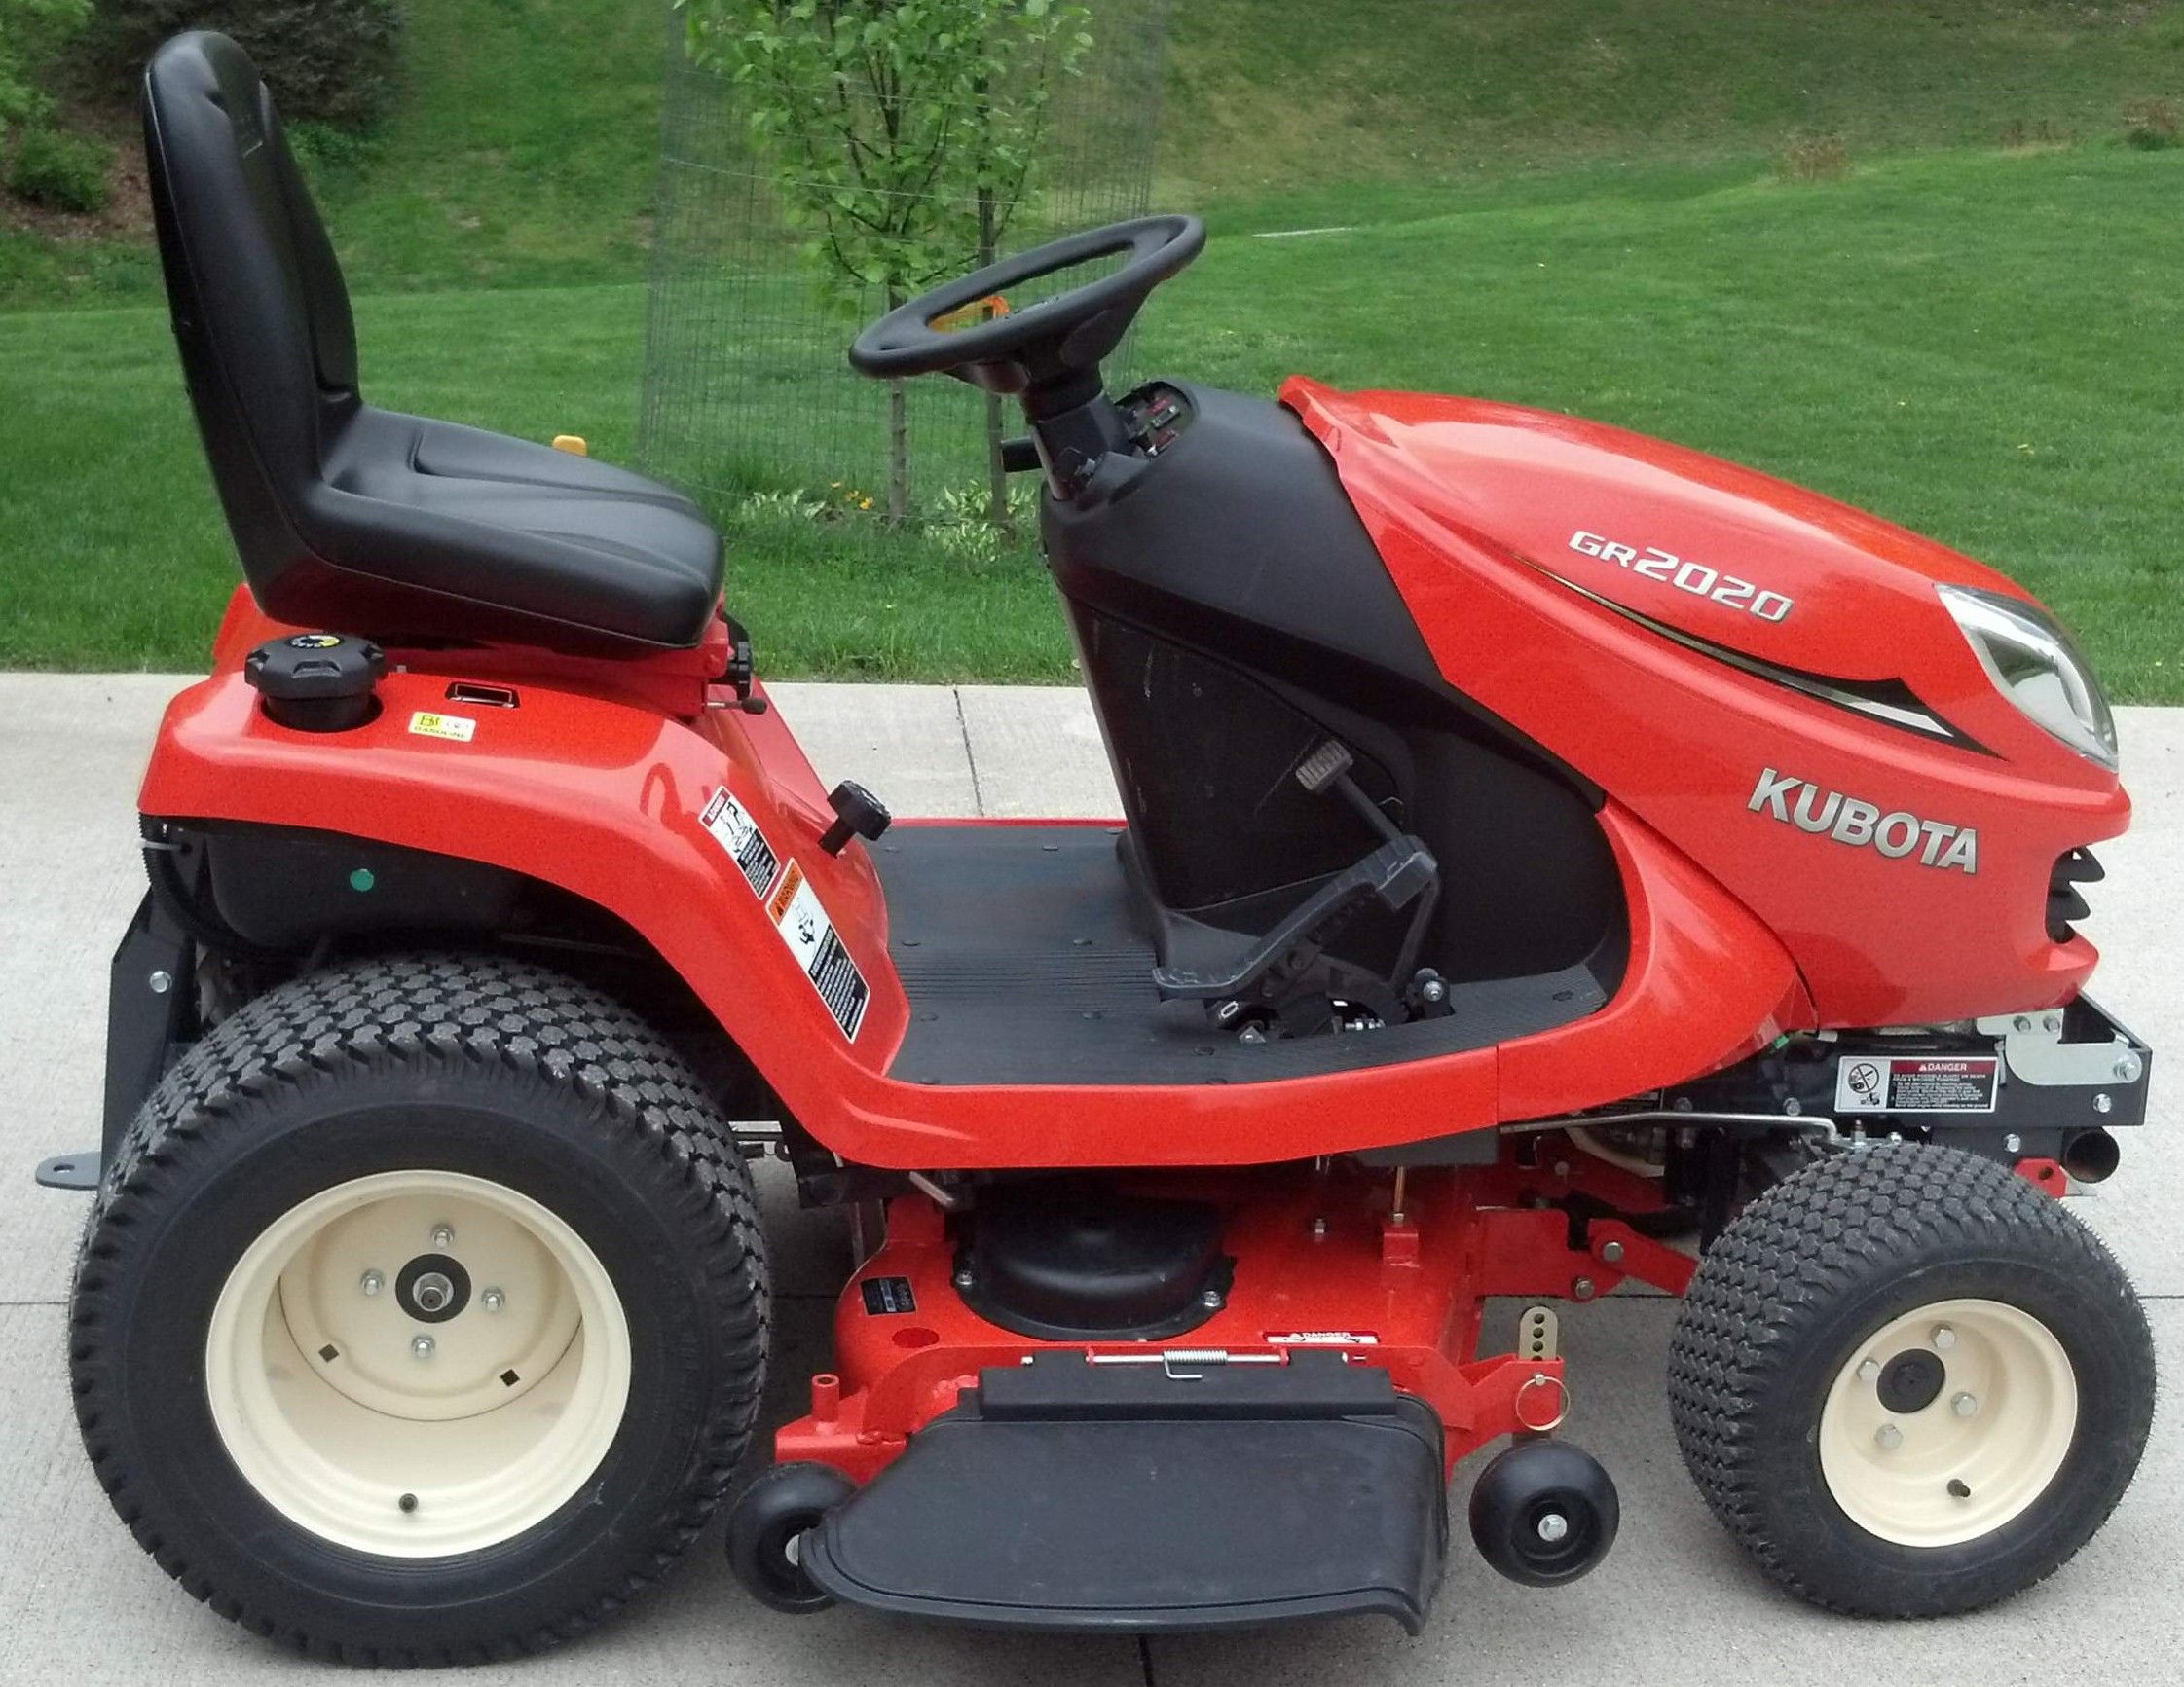 Kubota GR 2020 Lawn and Garden Tractor